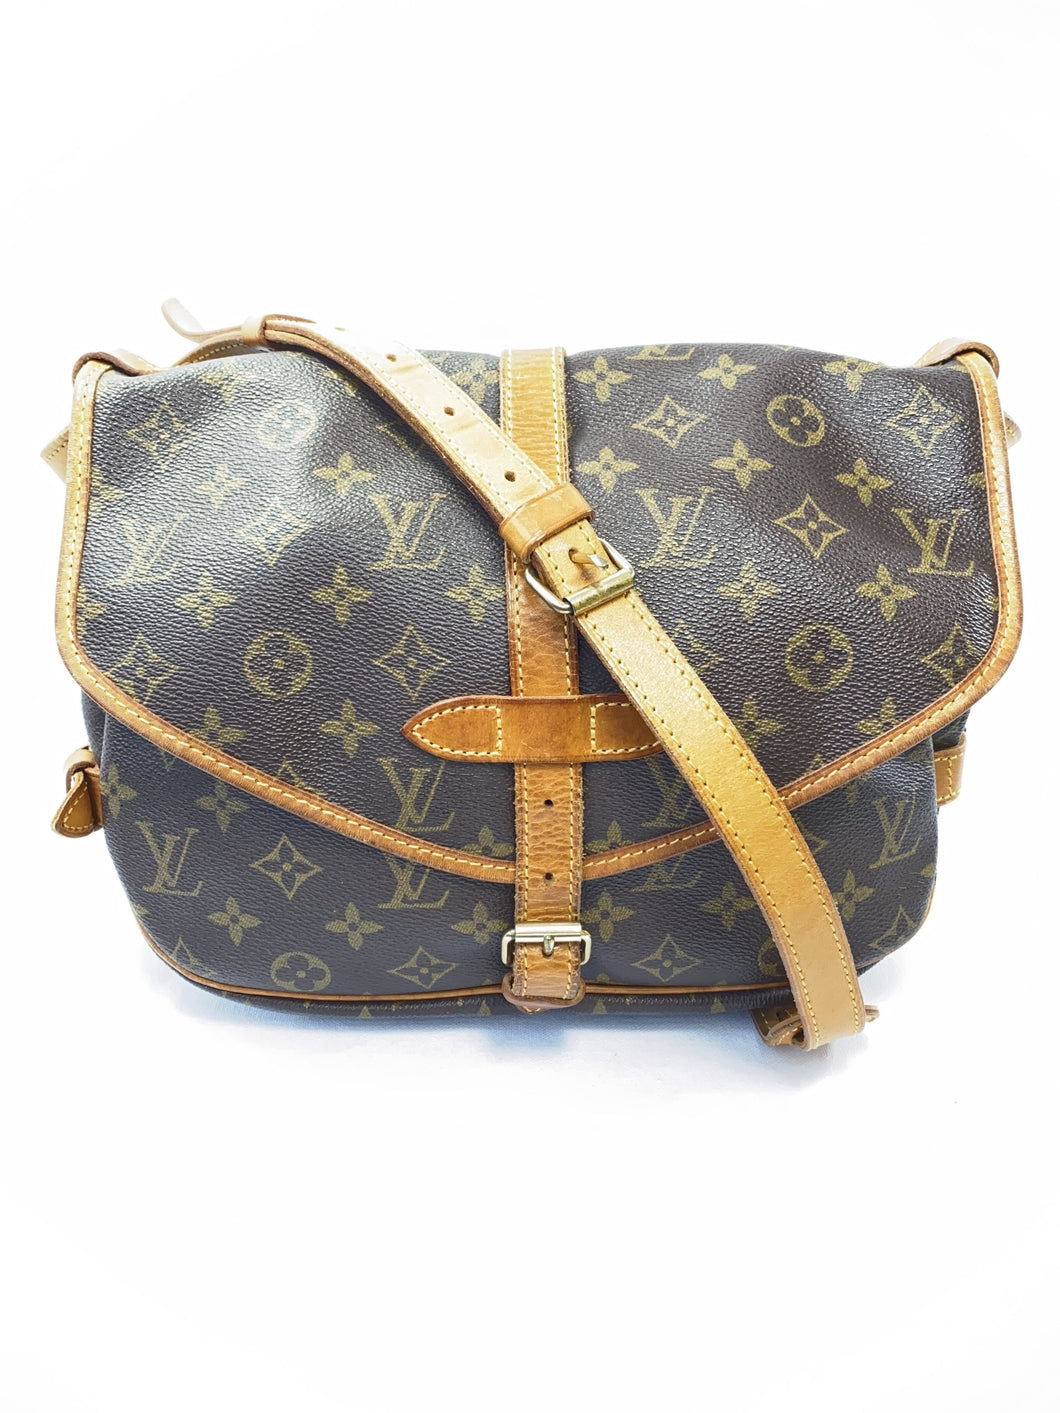 Louis Vuitton monogram Saumur 30 - My Girlfriend's Wardrobe York Pa